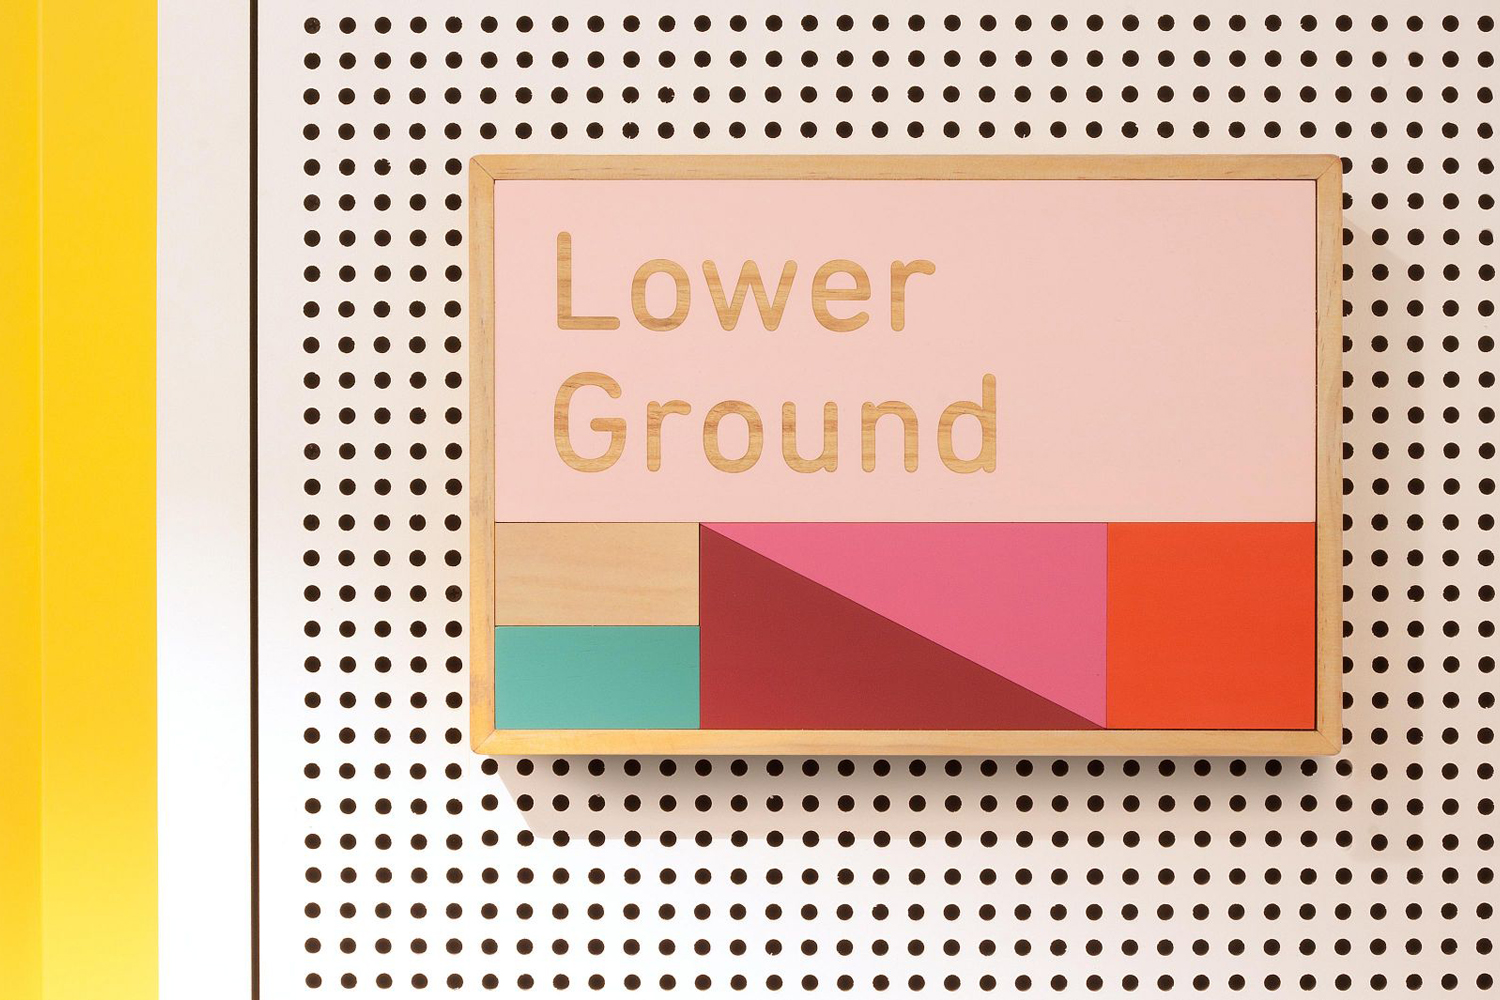 Signage and wayfinding designed by graphic design studio Toko for East Sydney Early Learning & Community Centre